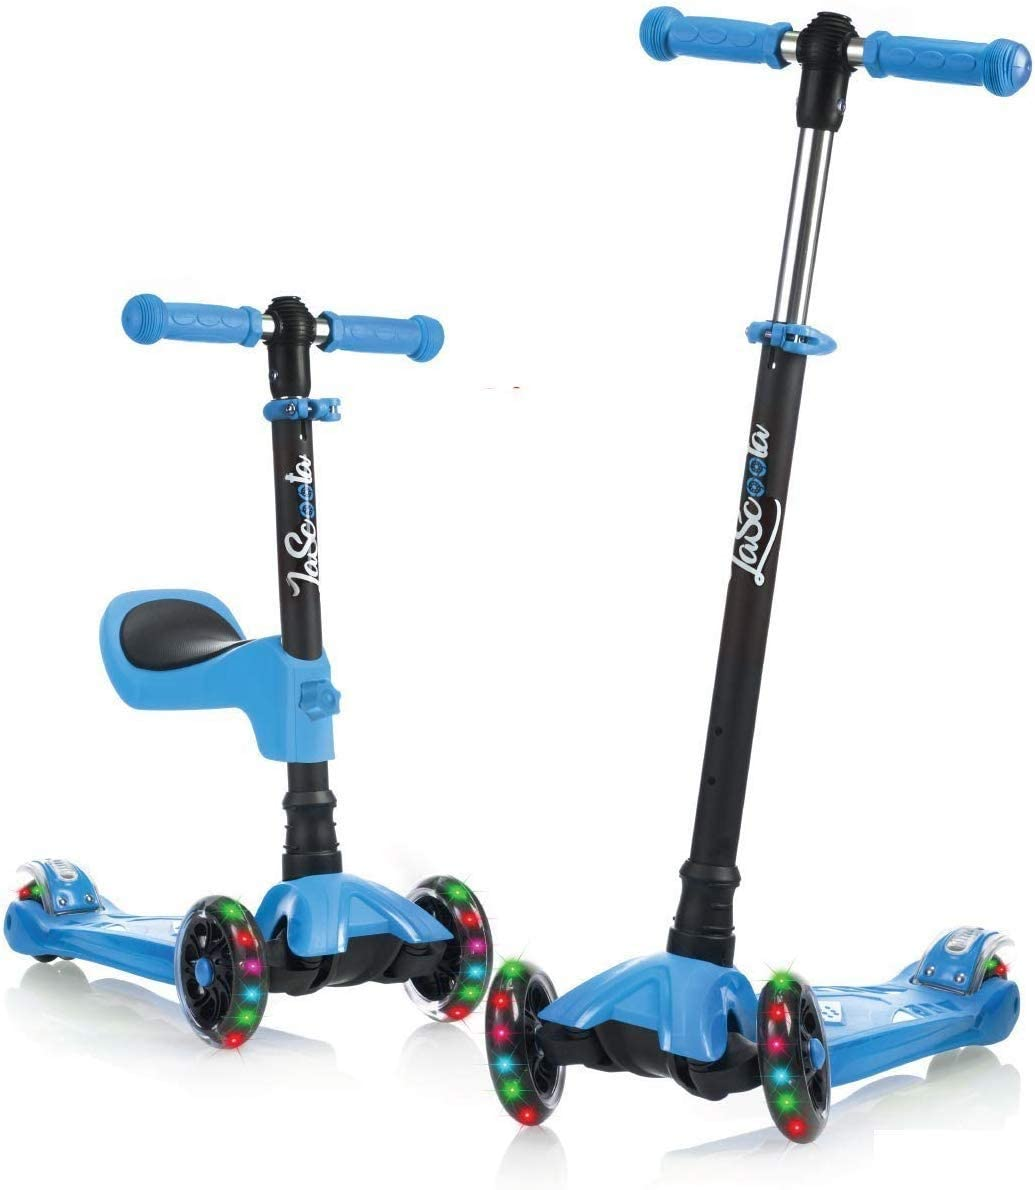 Toddler Scooter for Kids Ages Boys 3-5 I Luxury Girls Low price